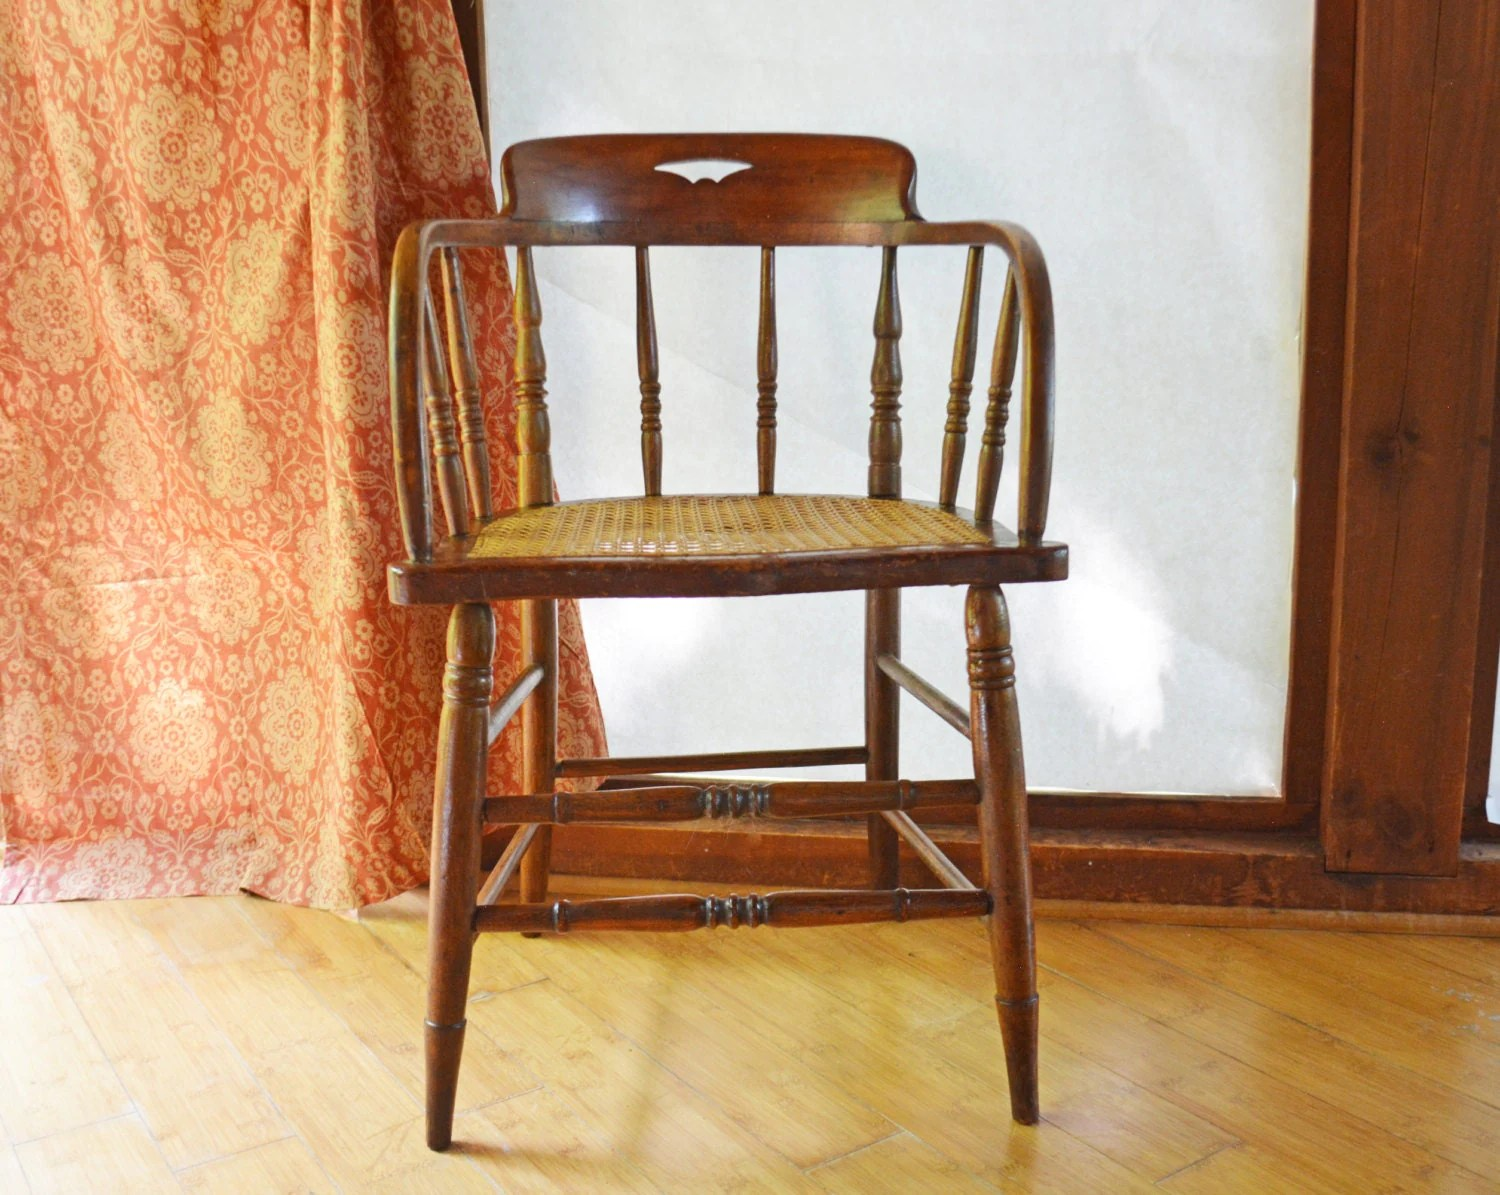 Antique Wood Chair Barrel Back Wooden Chair Small Captains